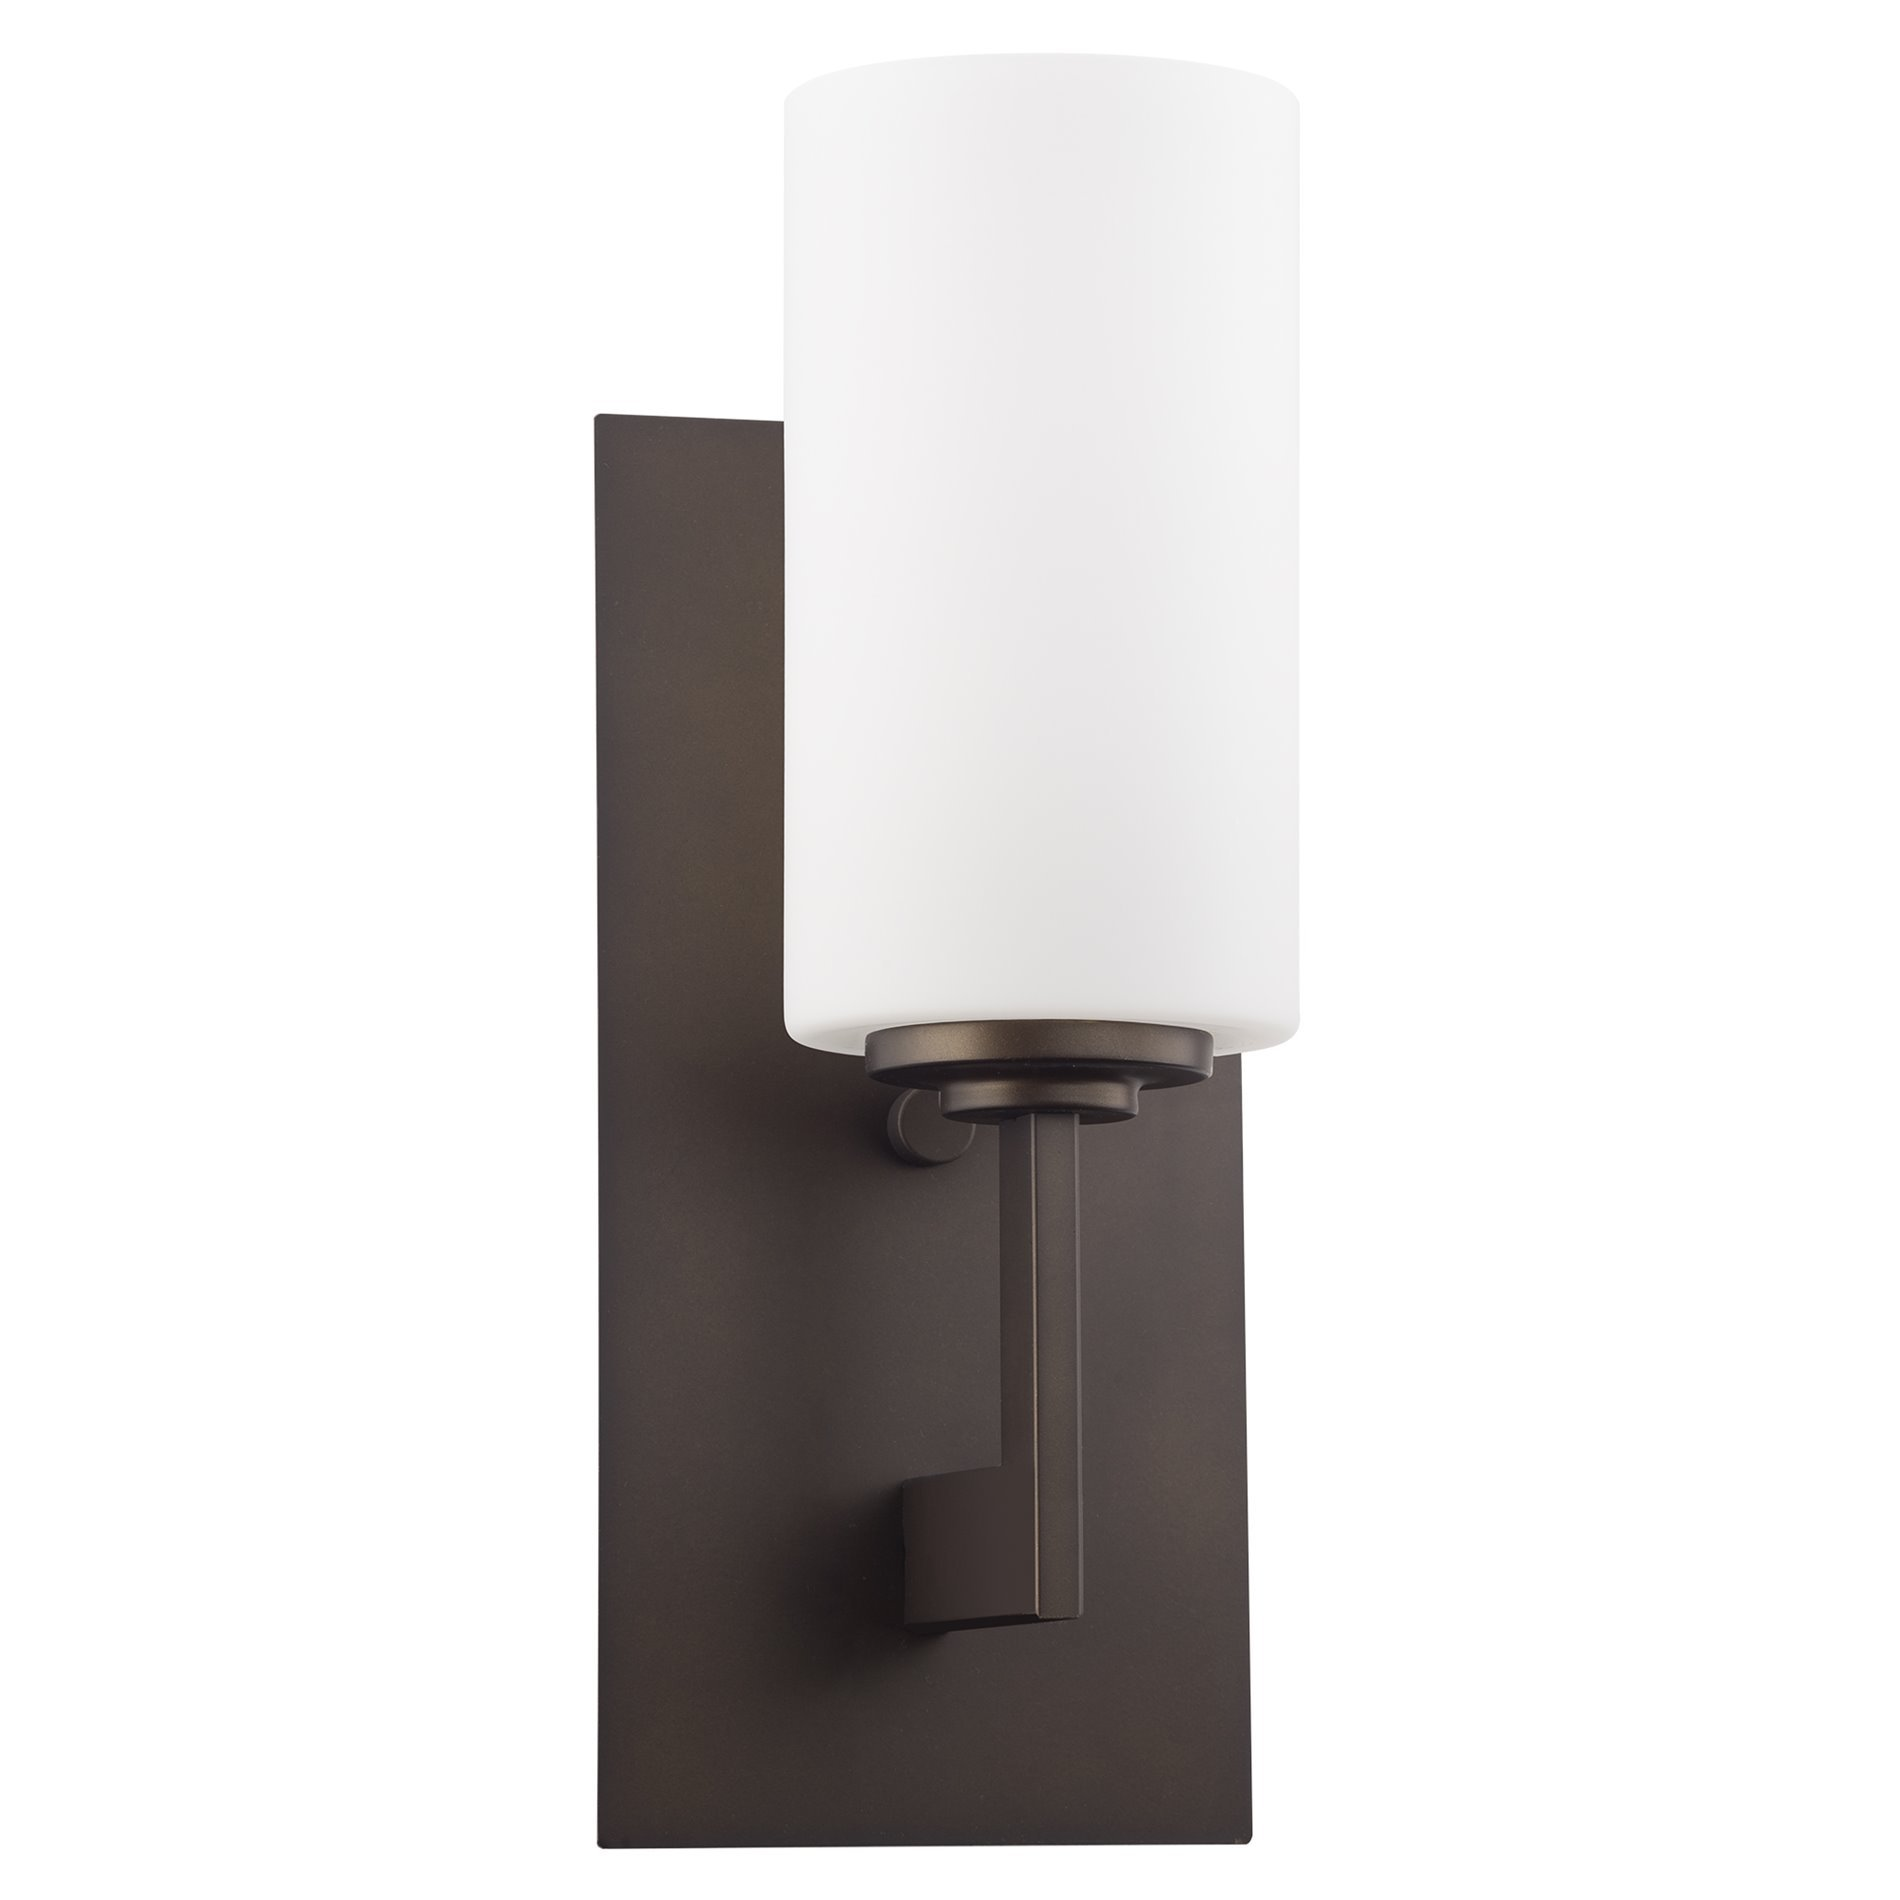 Kira Home Celene 13'' Wall Sconce/Wall Light + Frosted Glass Shade, Oil-Rubbed Bronze Finish by Kira Home